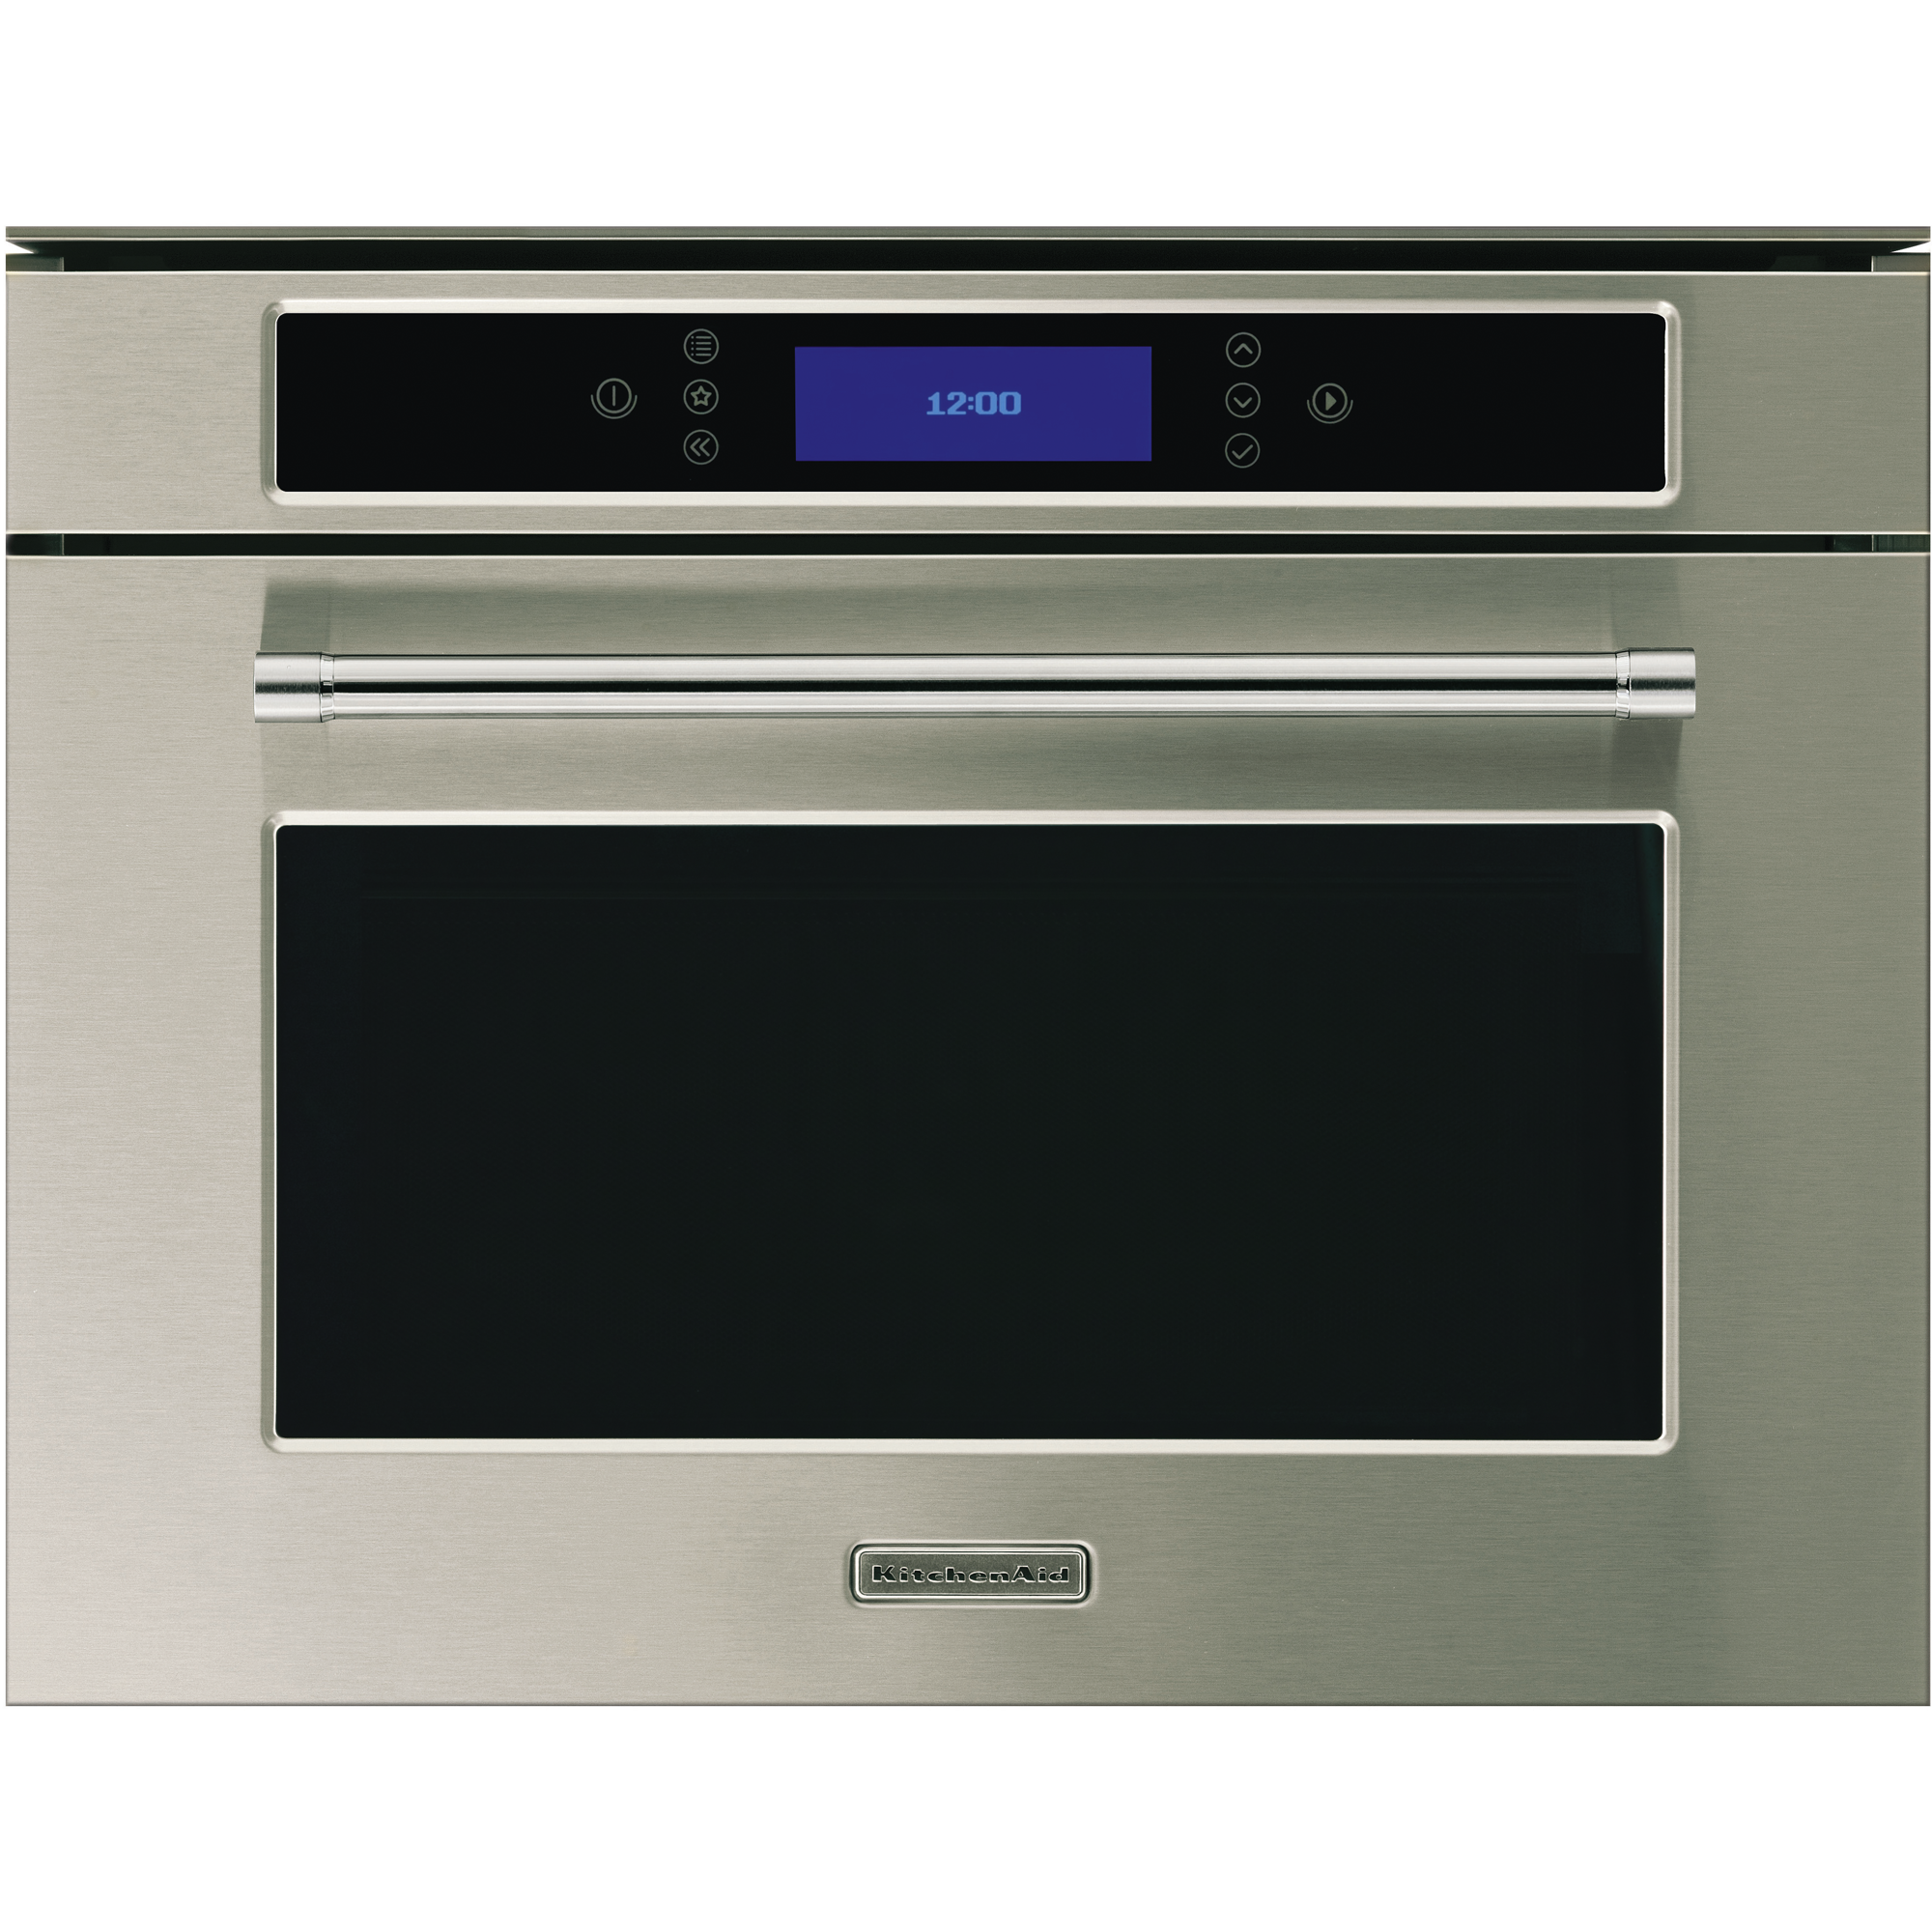 Kitchenaid microwave kitchenaid microwave oven combo installation - Kitchenaid microwave ...